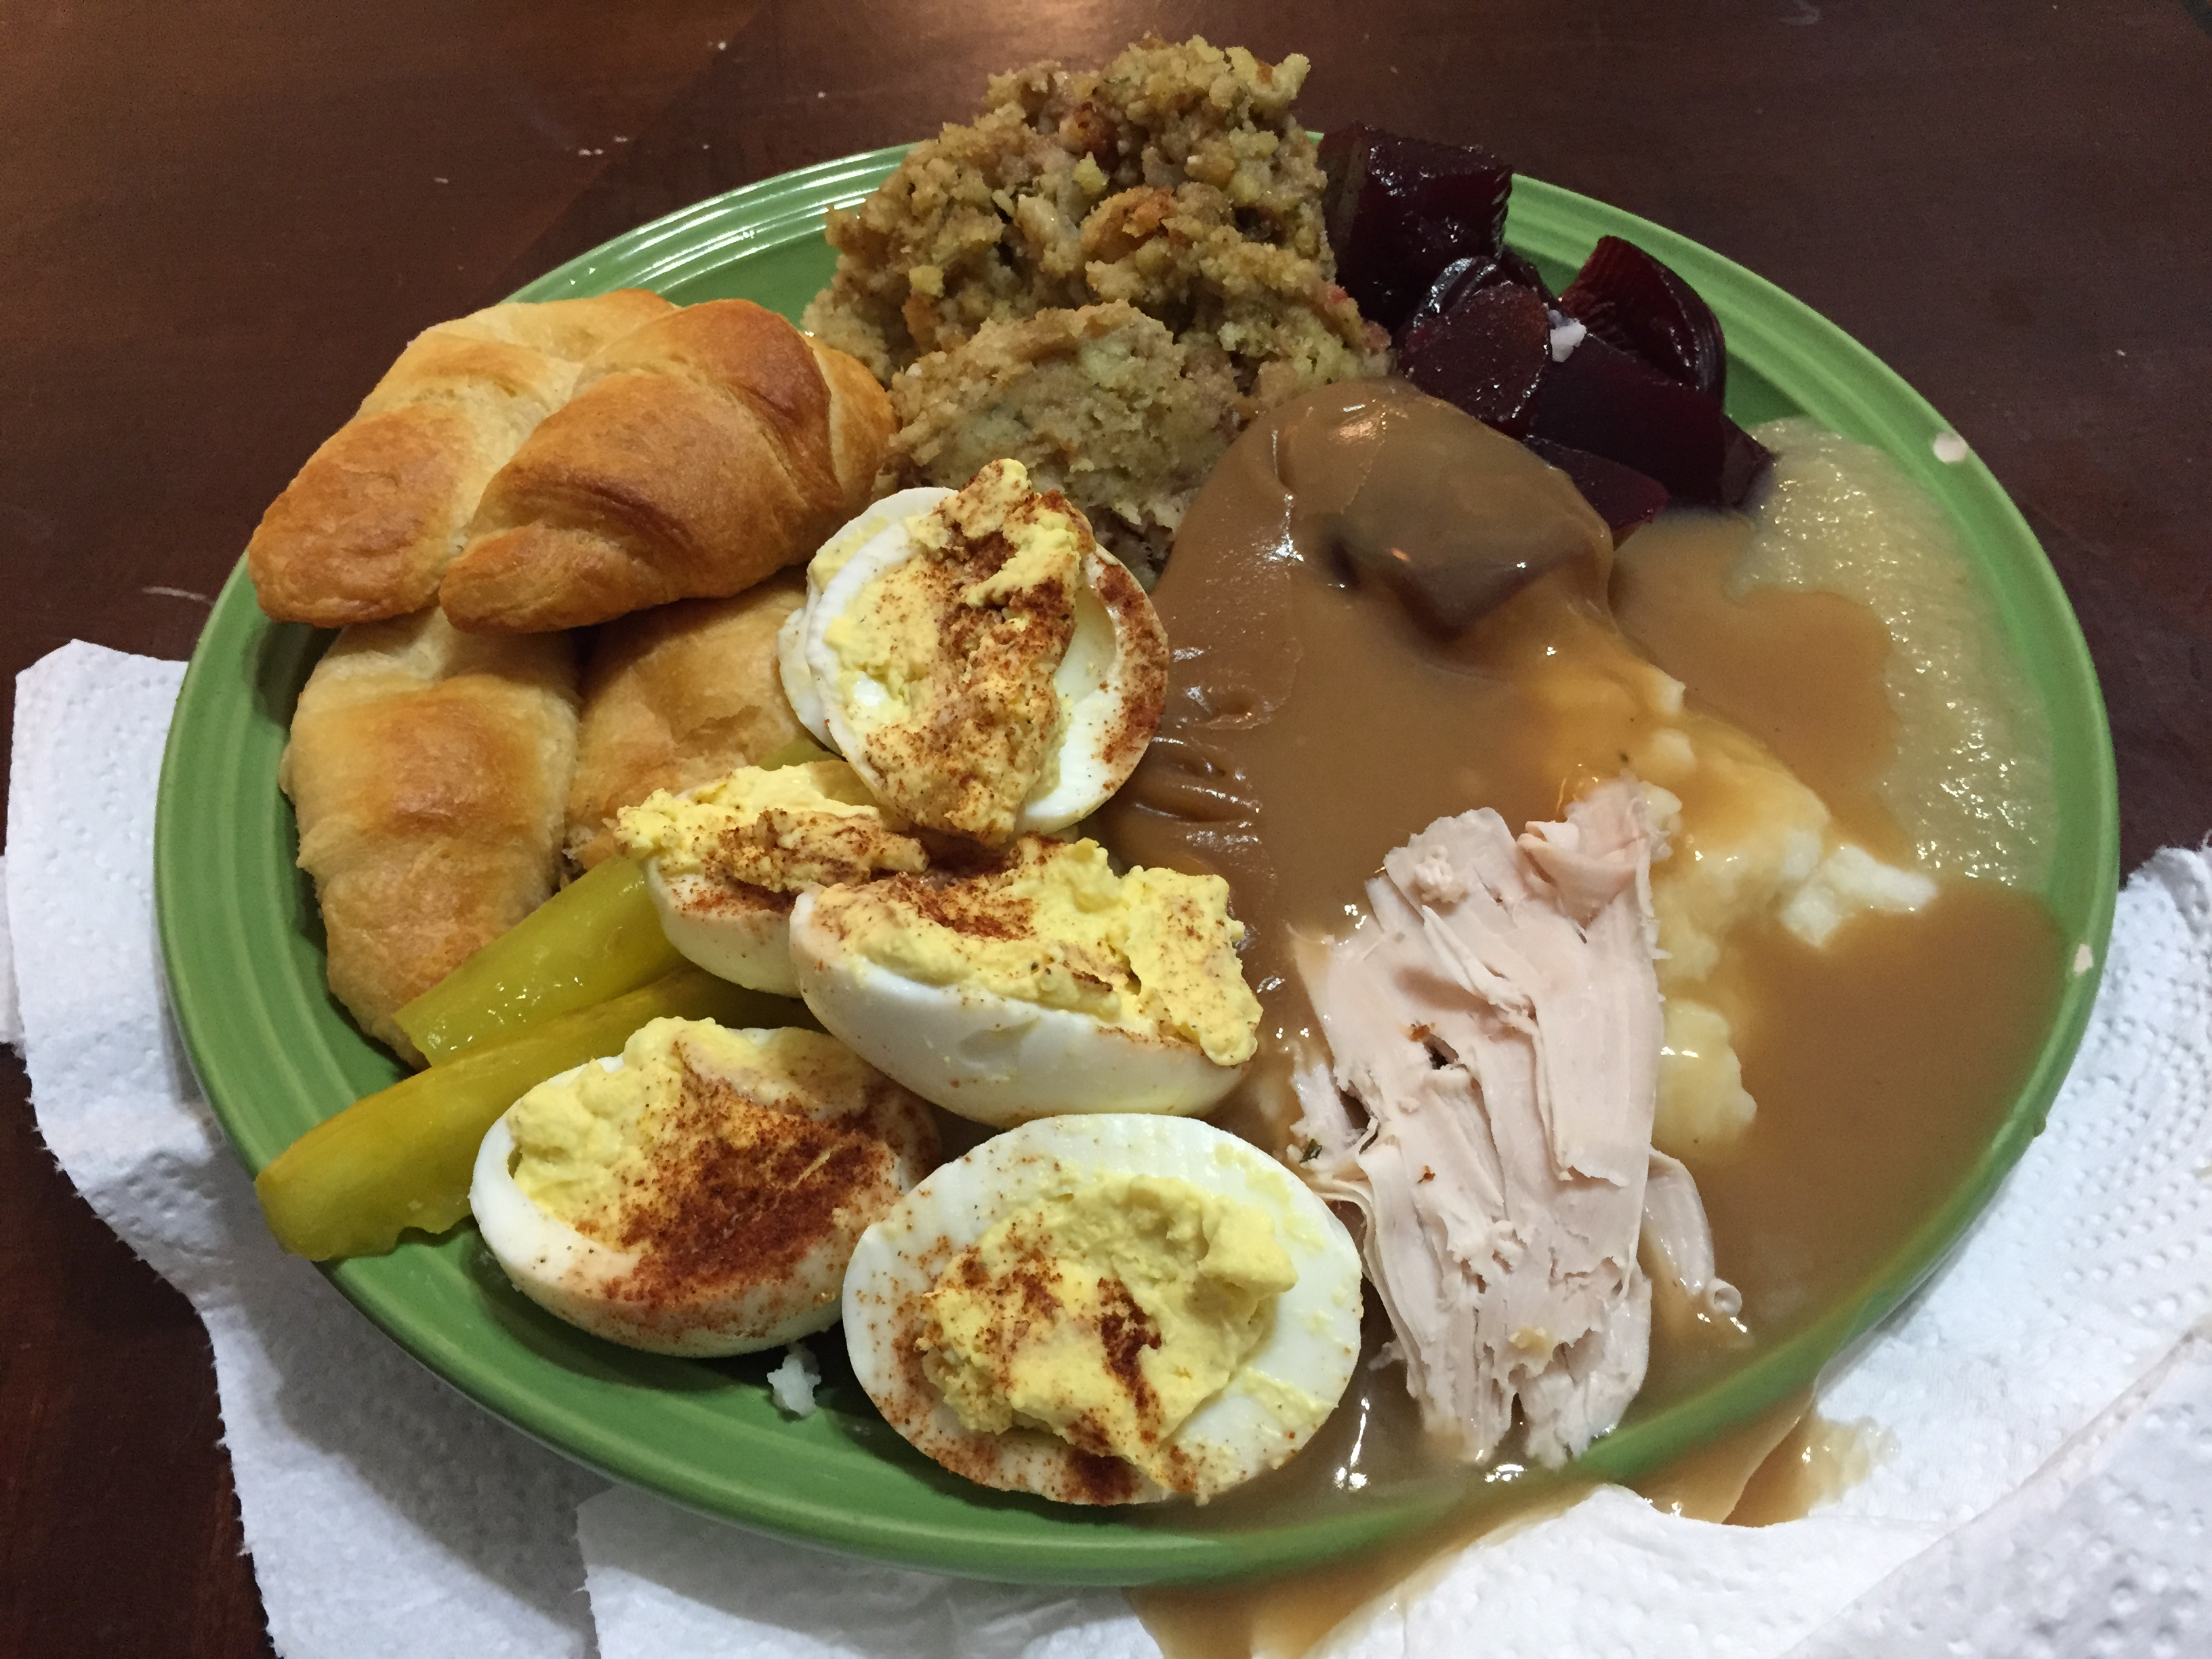 File2017-11-22 17 49 56 A Thanksgiving dinner plate with turkey & File:2017-11-22 17 49 56 A Thanksgiving dinner plate with turkey ...